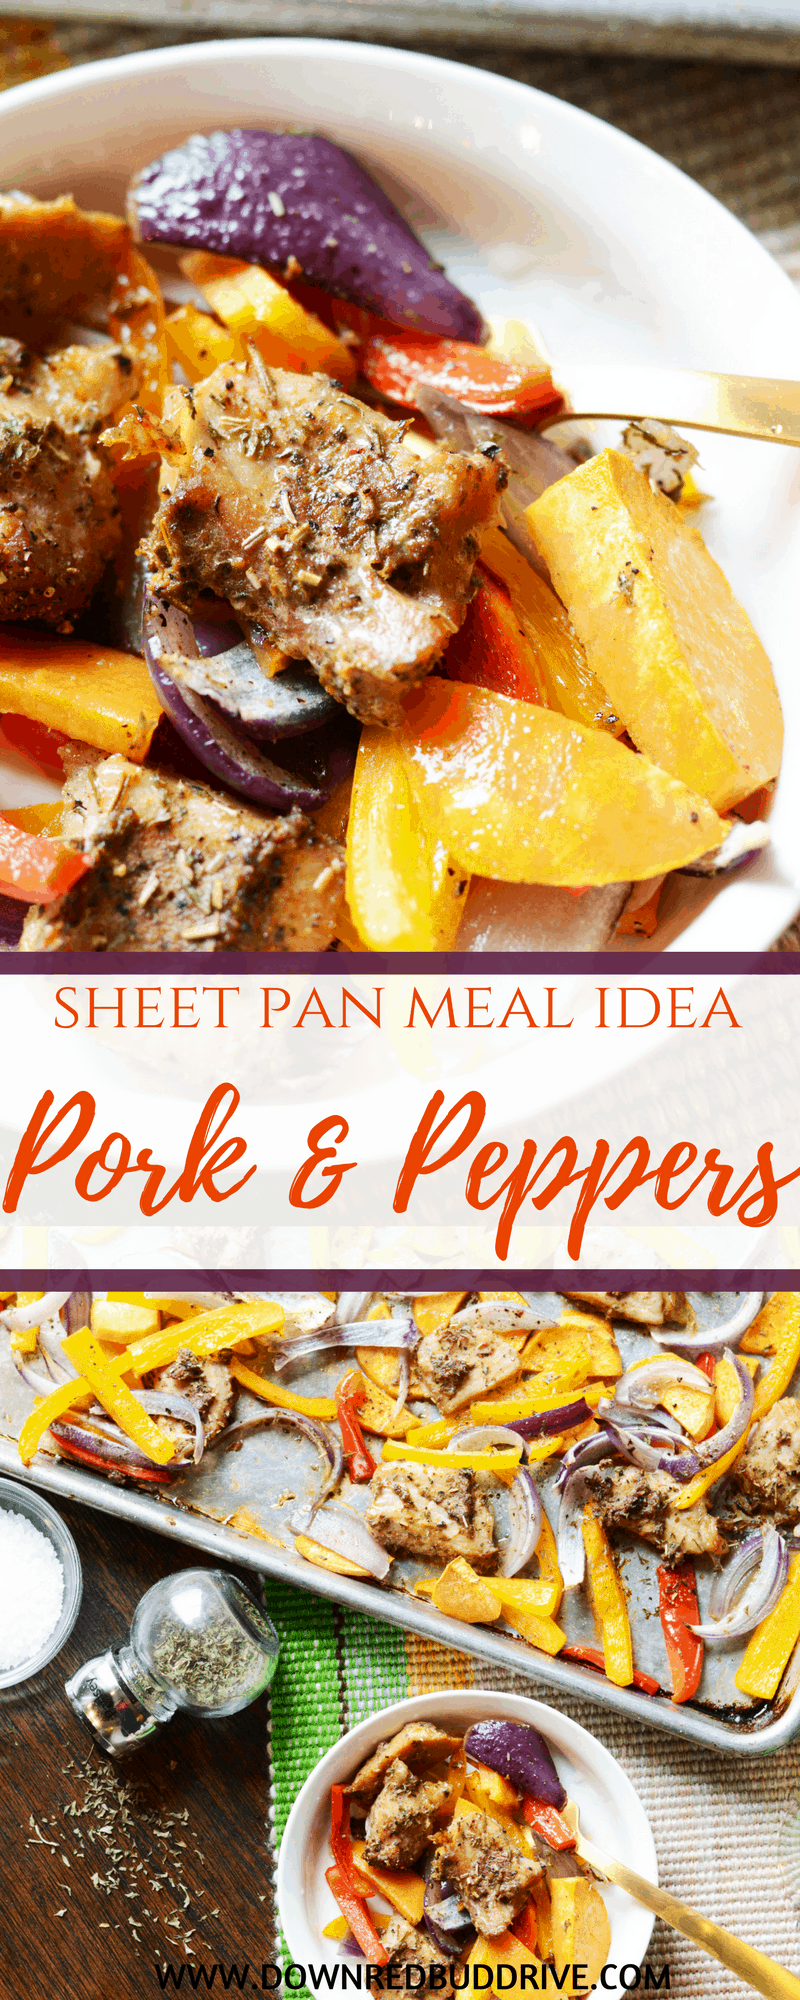 Sheet Pan Pork and Peppers   One Pan Meal   One Pan Dinner   Sheet Pan Dinner   Pork Recipe   Pork Loin Recipe   Gluten Free Dinner   Low Carb Dinner Recipe   Healthy Dinner Recipe   Down Redbud Drive #ad #onepandinner #lowcarbrecipe #healthydinner #RealFlavorRealFast